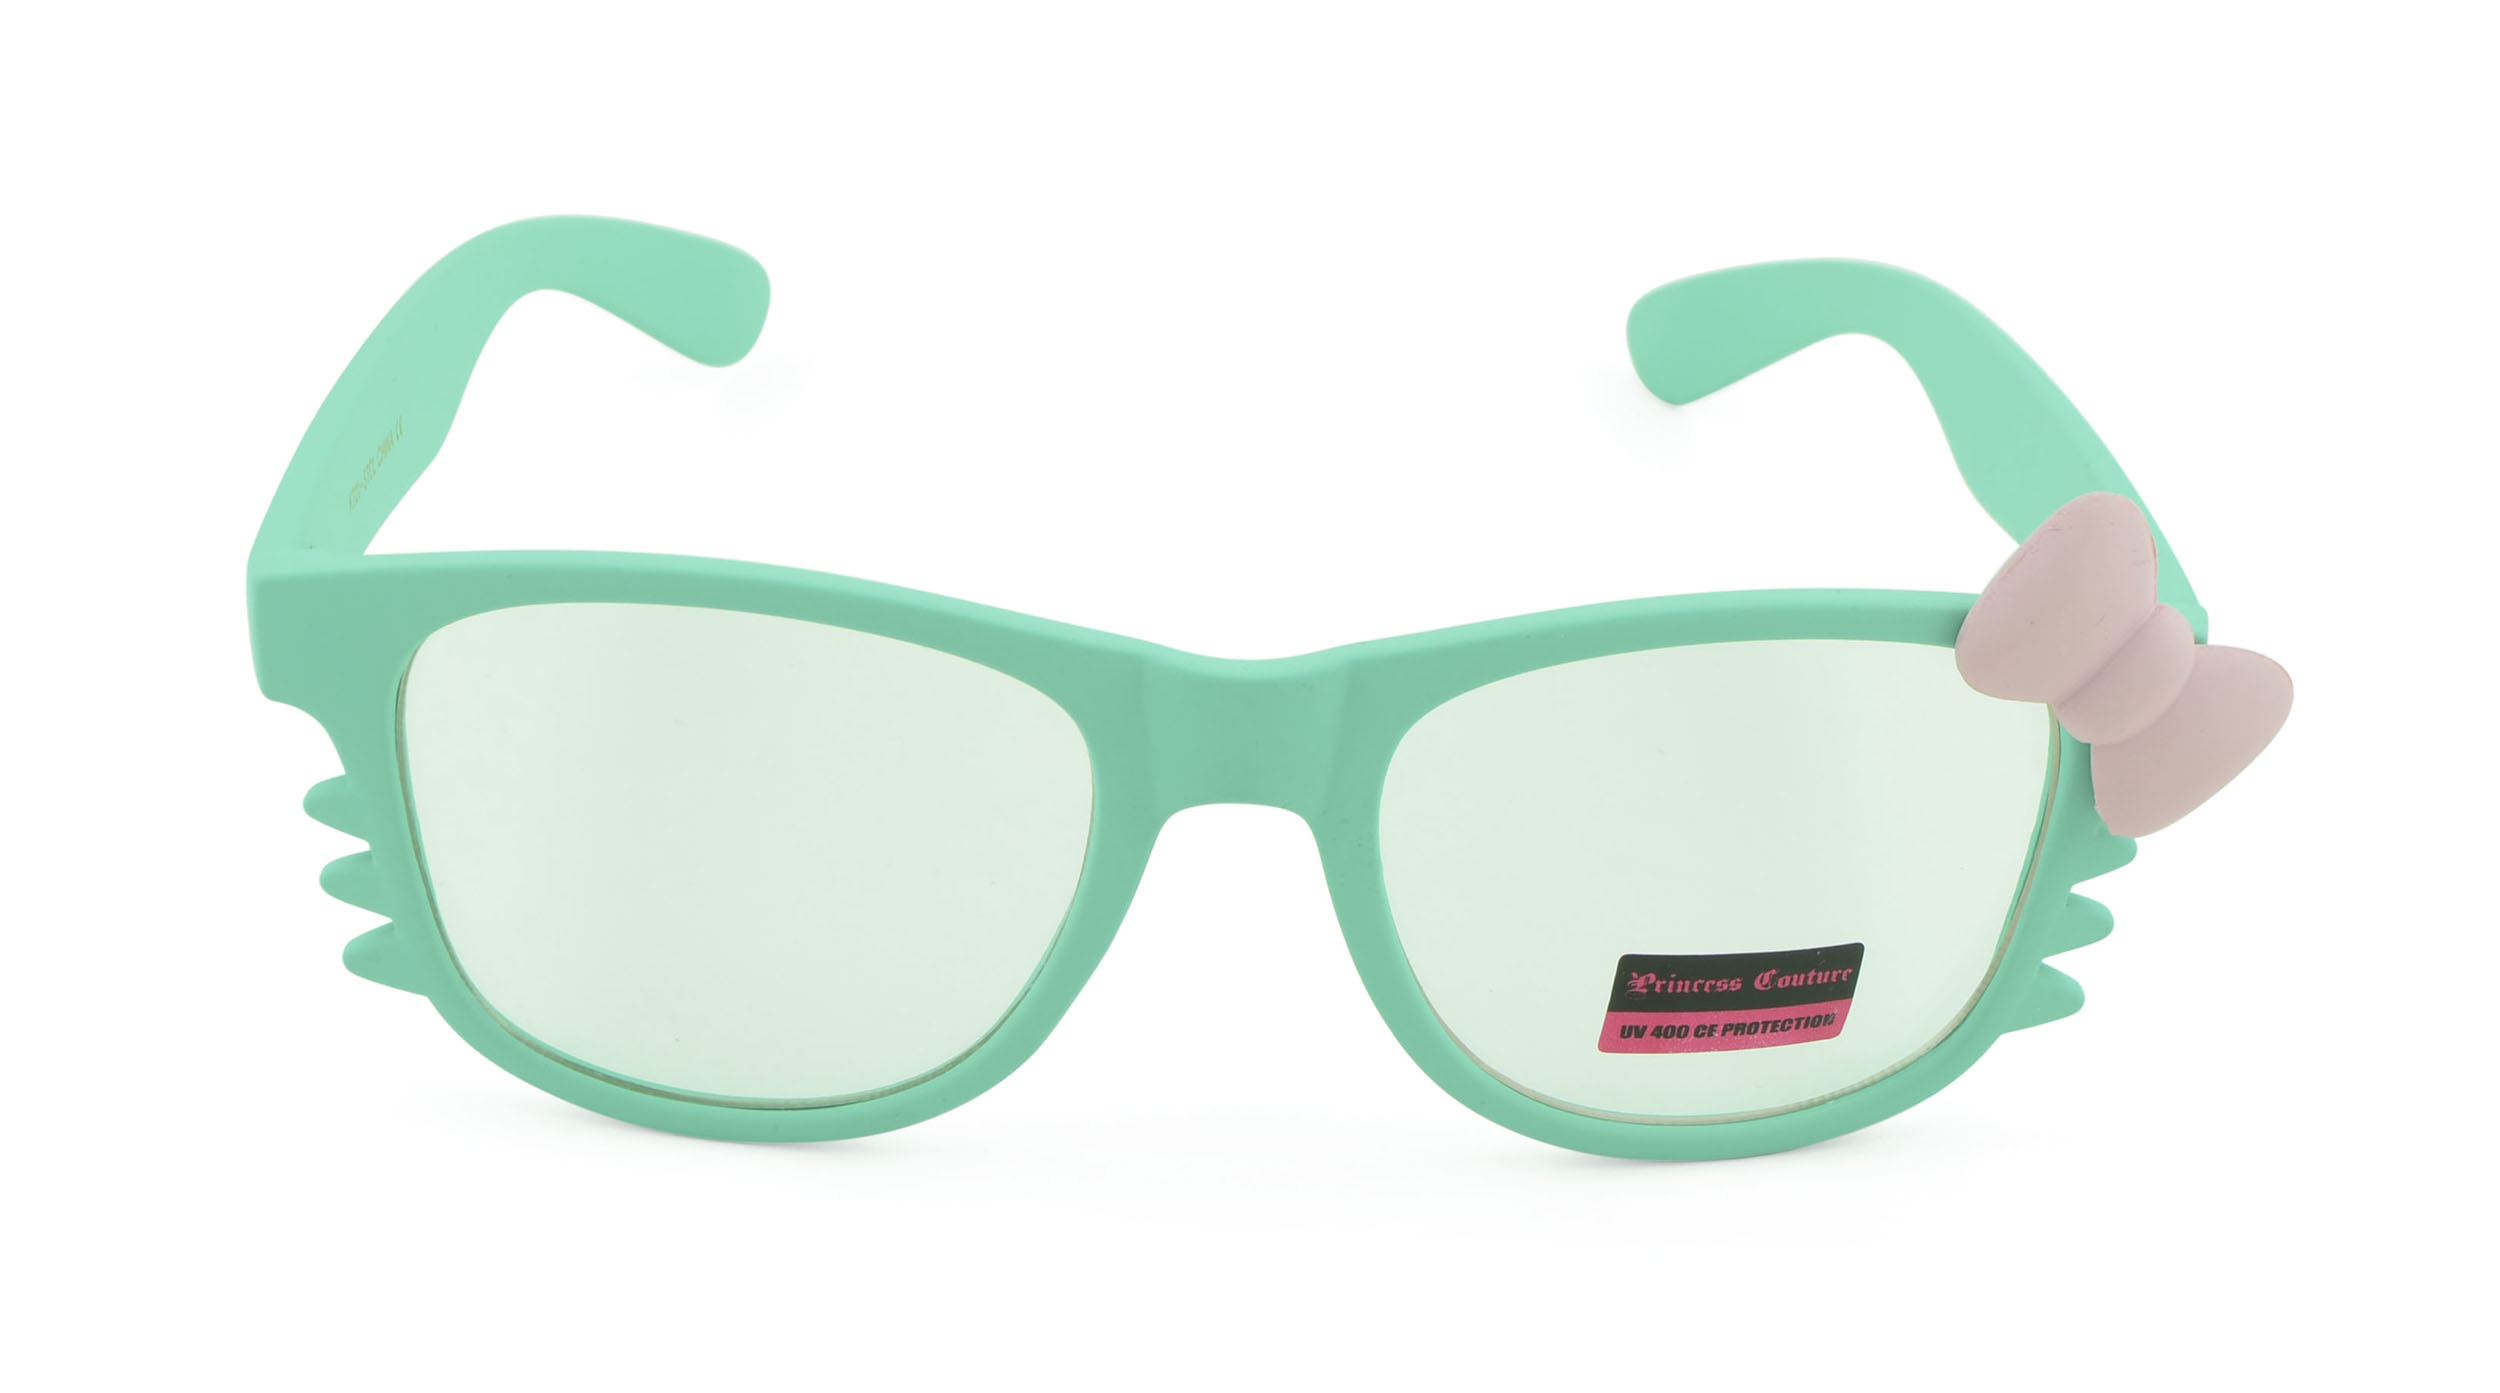 Belle Donne-Women's Kitty Cat Style Sunglasses | Whiskers and Bow Accent-Teal